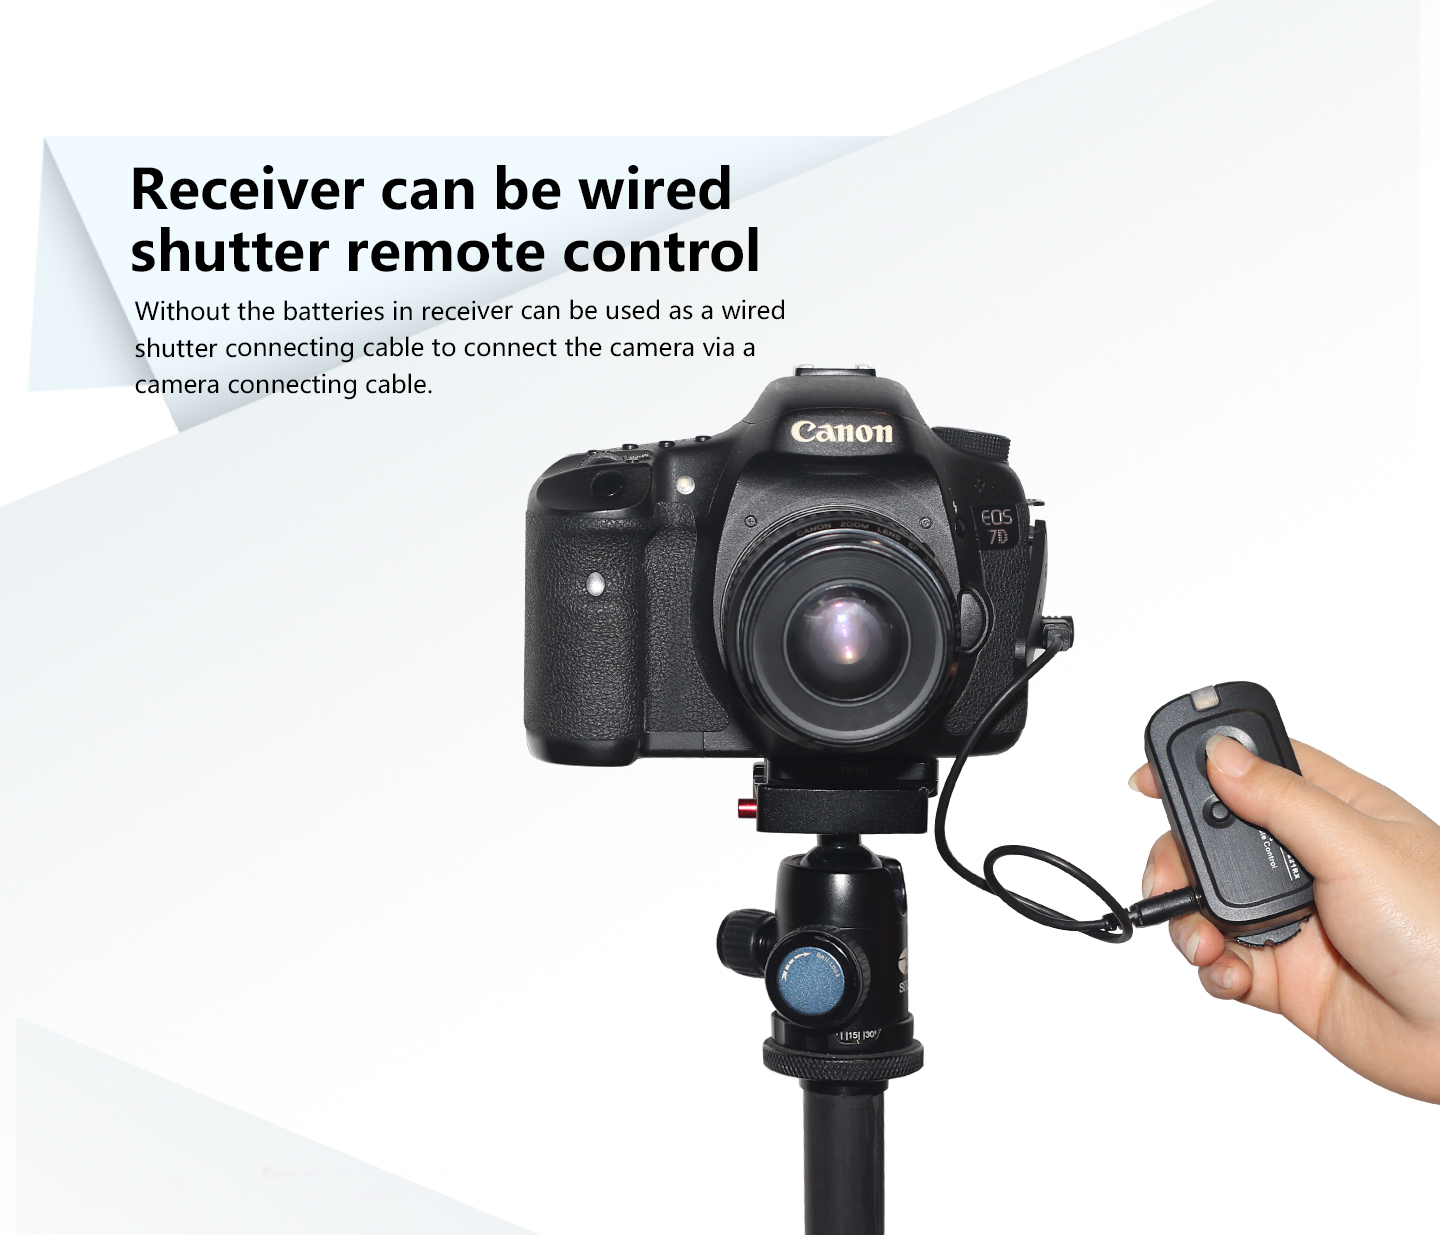 Receiver can be wired shutter remote control